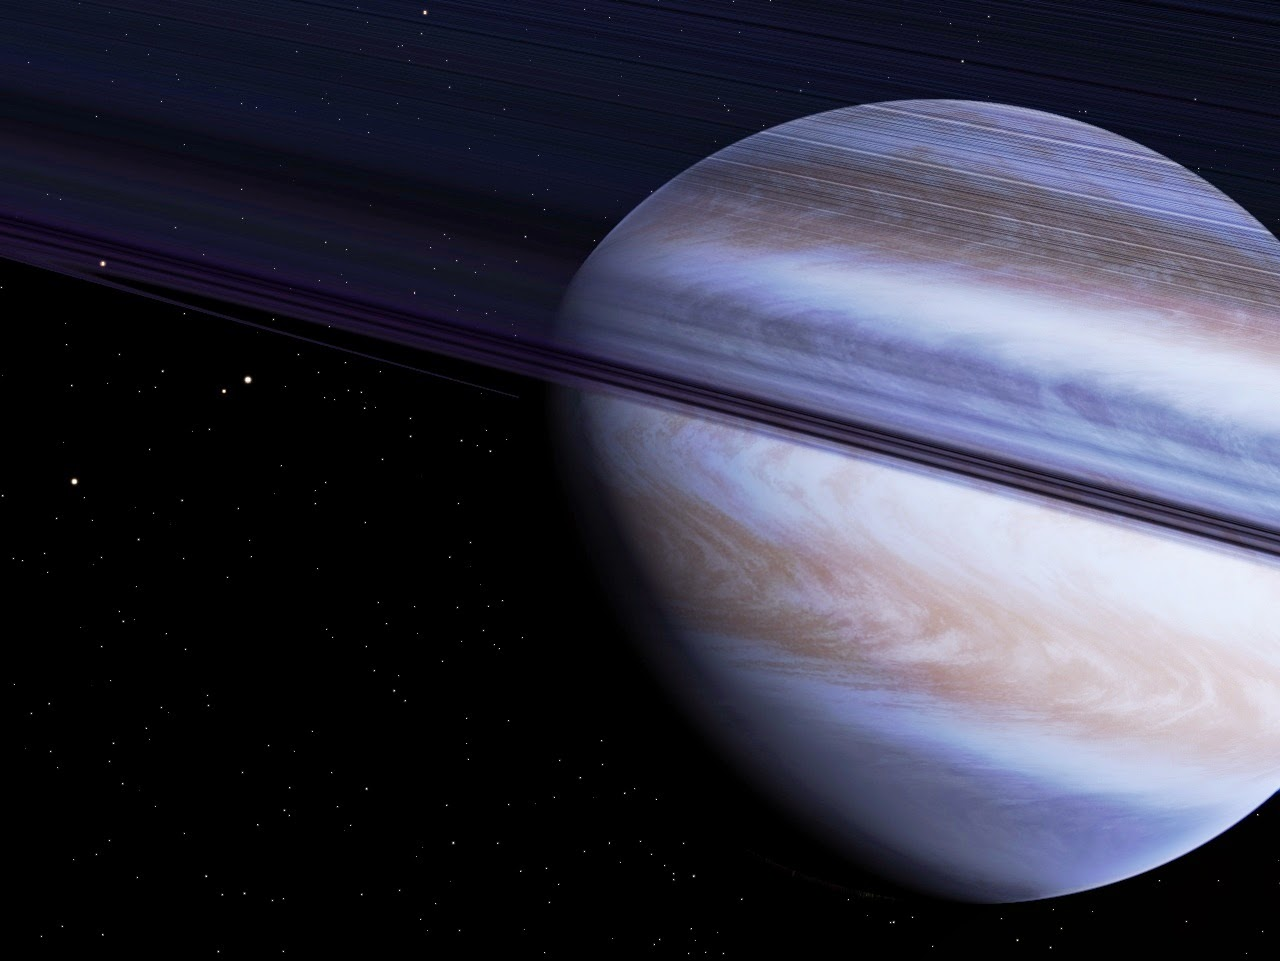 Beyond Earthly Skies: An Oblate Giant Planet